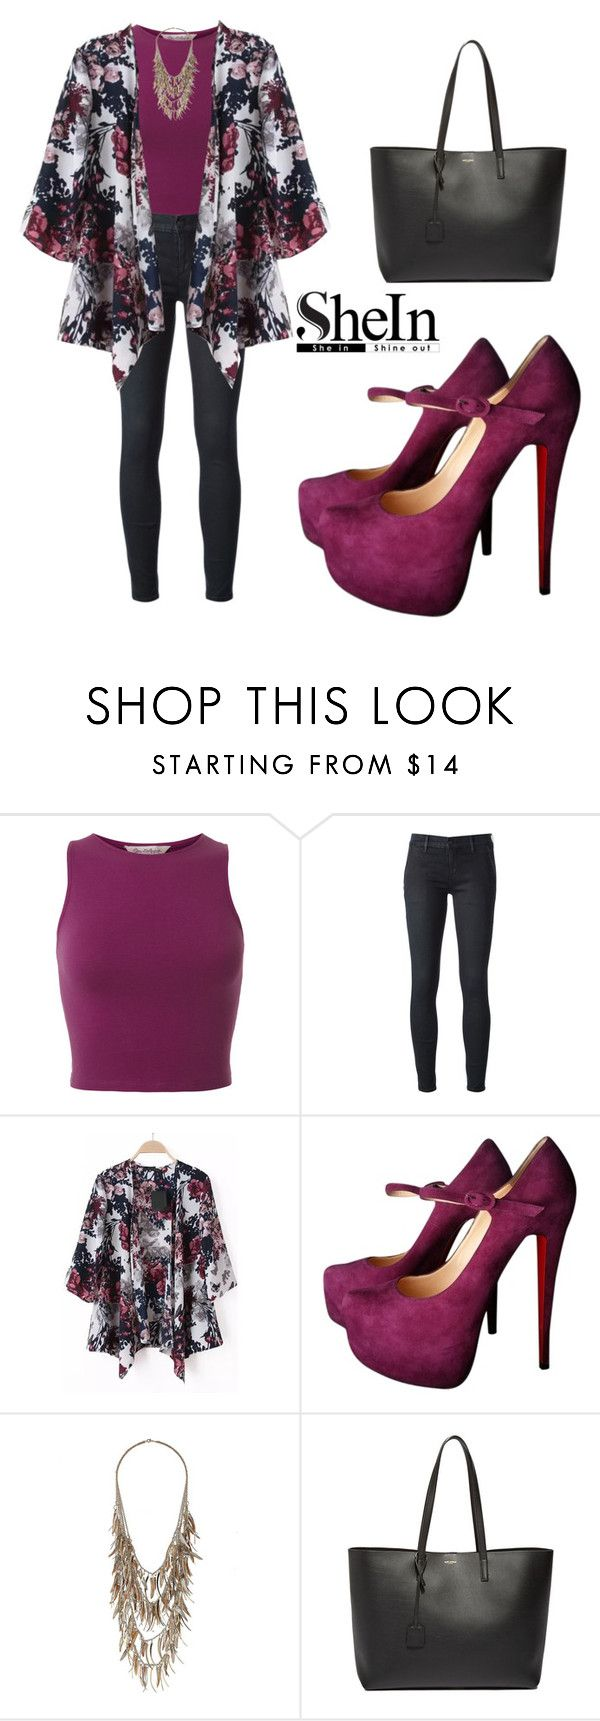 """""""SHEINSIDE Kimono"""" by tania-alves ❤ liked on Polyvore featuring Miss Selfridge, Koral, Christian Louboutin and Yves Saint Laurent"""